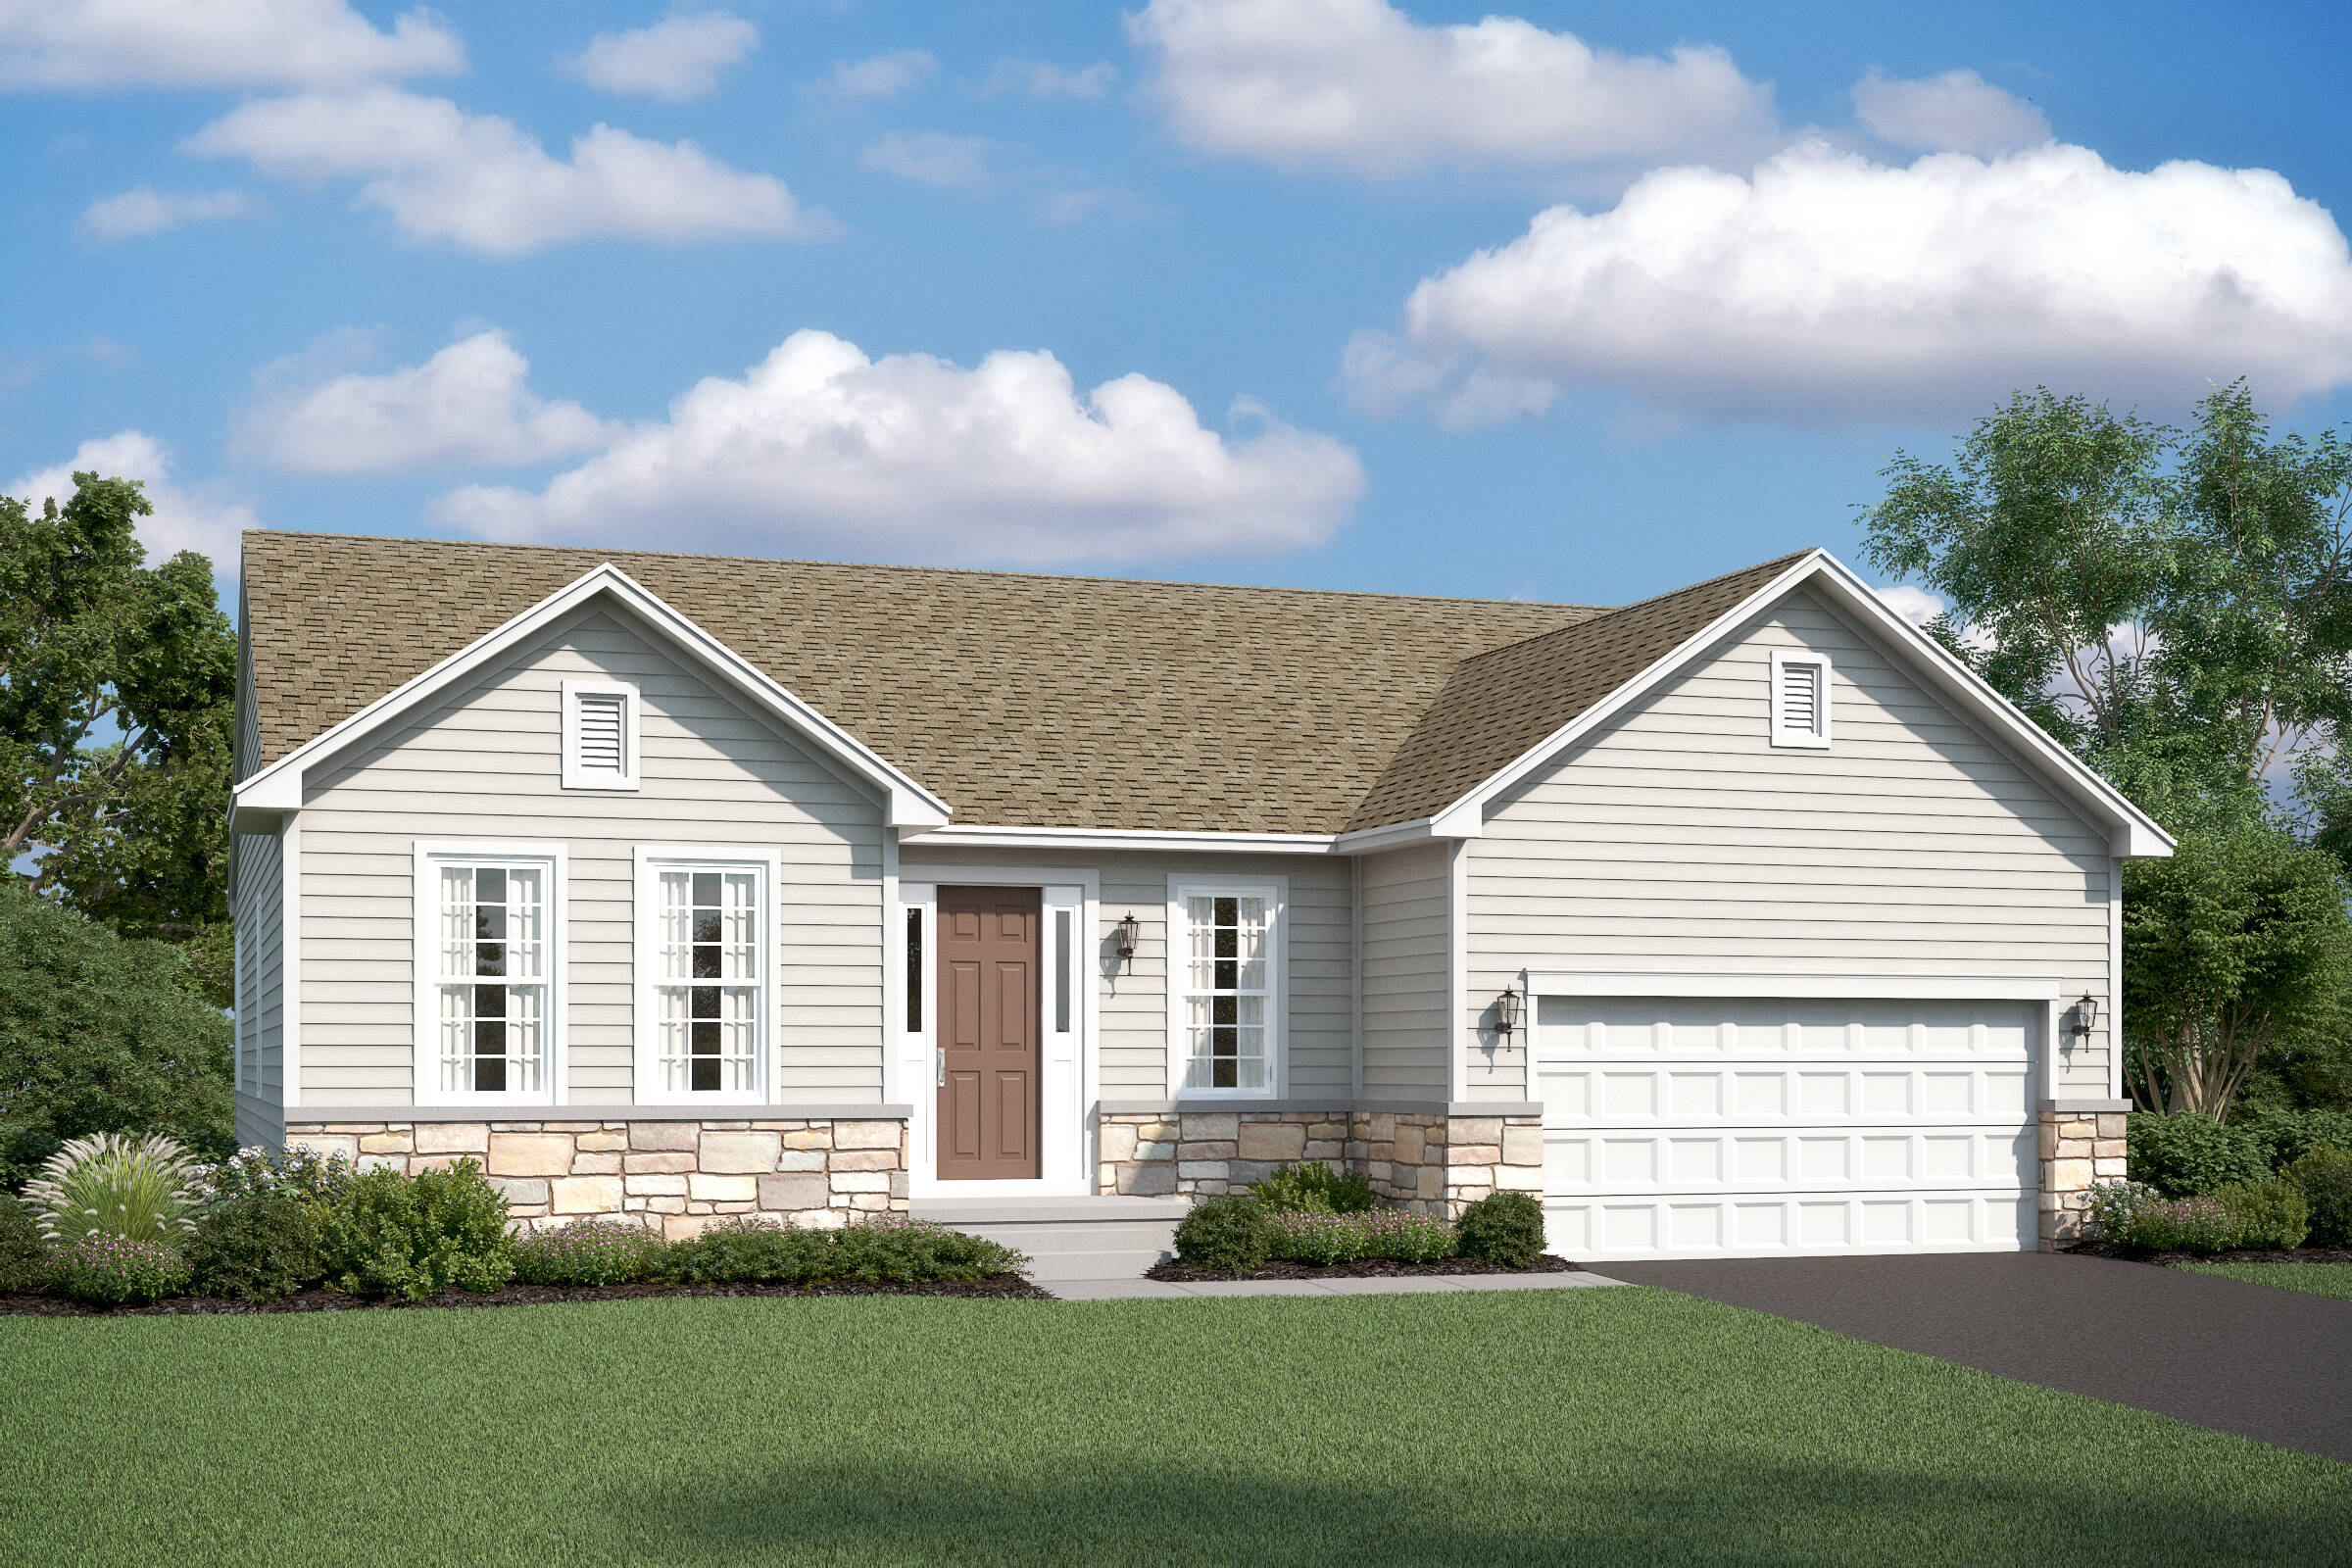 st michael a new homes at red mill pond in delaware